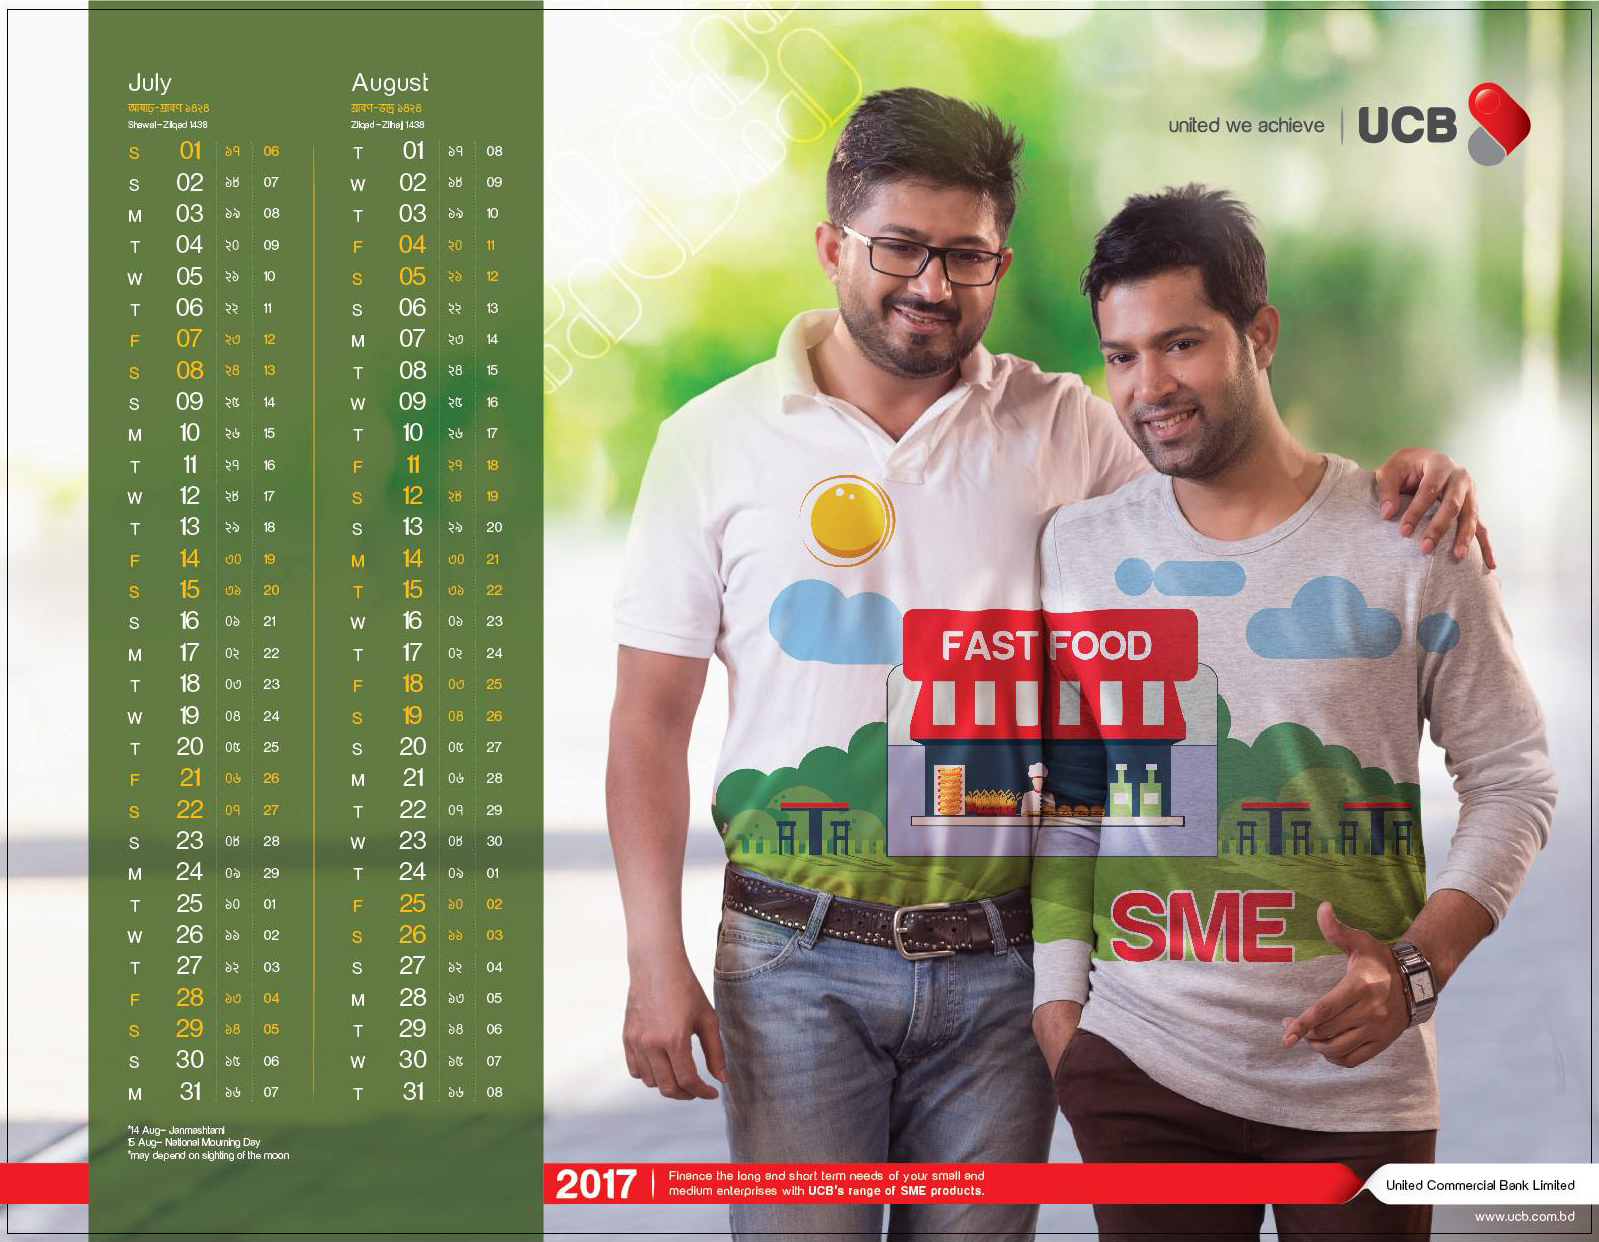 Ucb Bank Calendar Photoshoot. On Behance throughout Ucb Calendar 2020